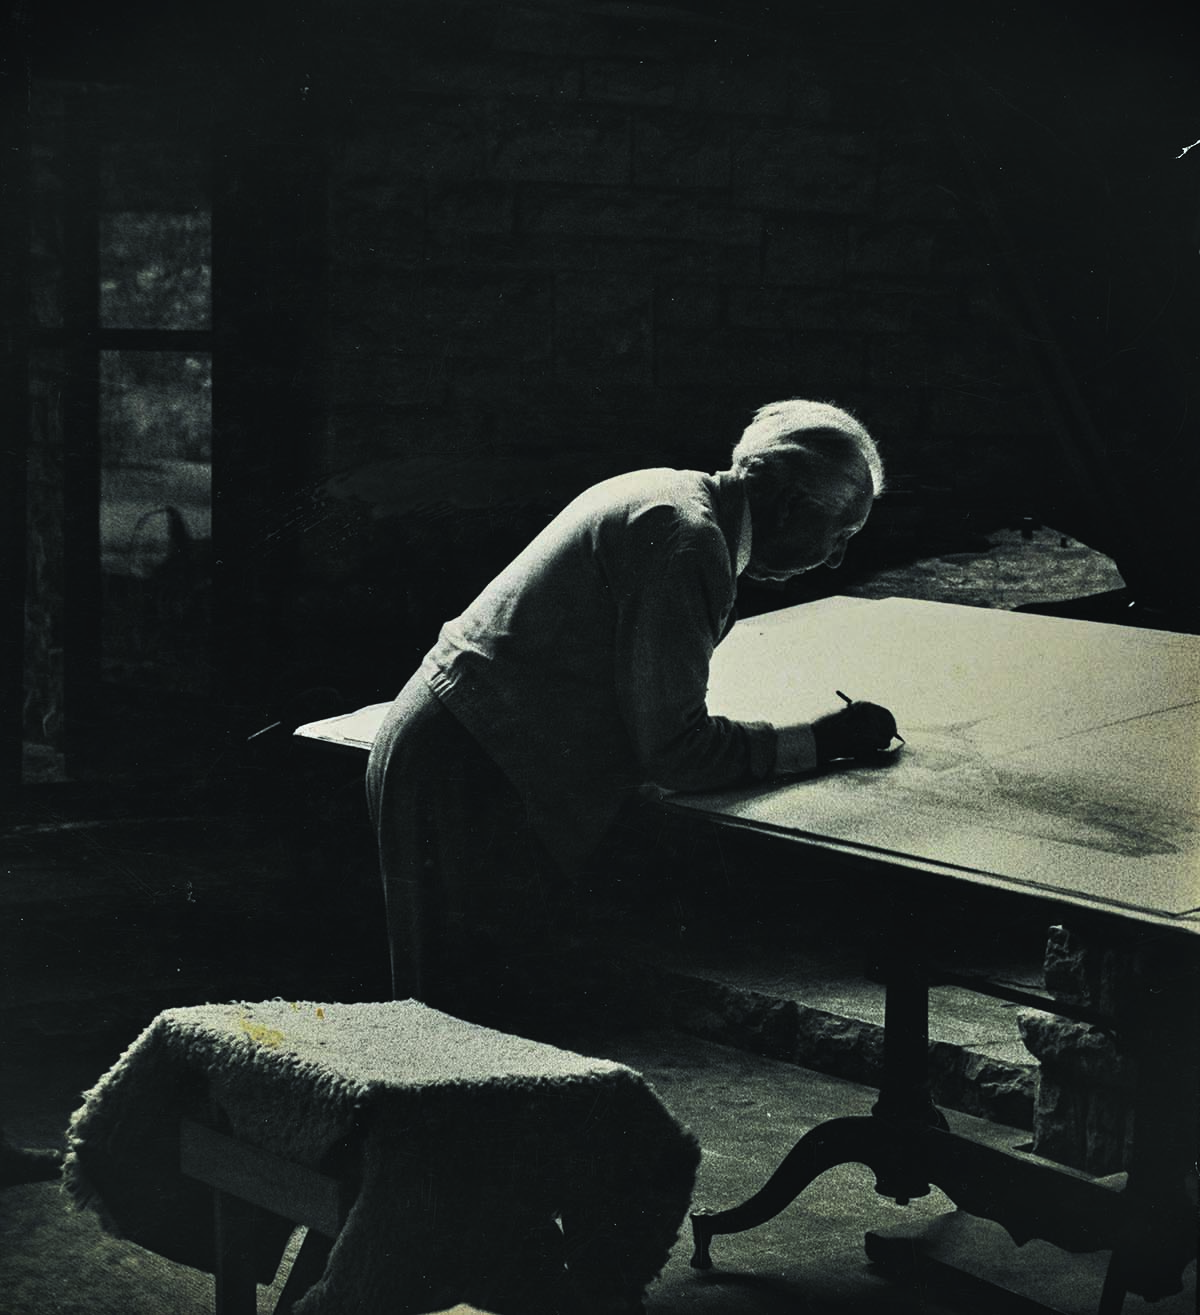 Frank Lloyd Wright. Photographer unknown.